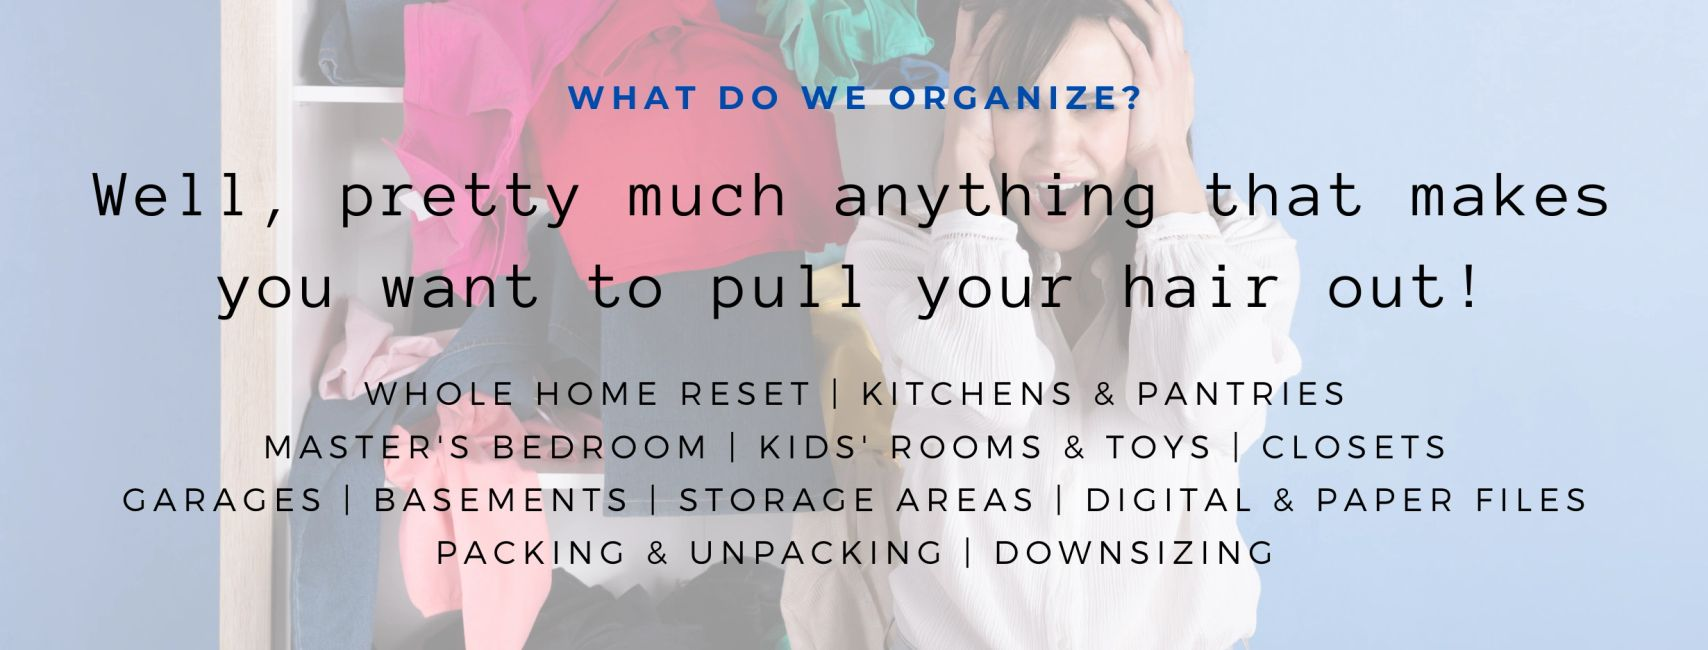 What do we organize?